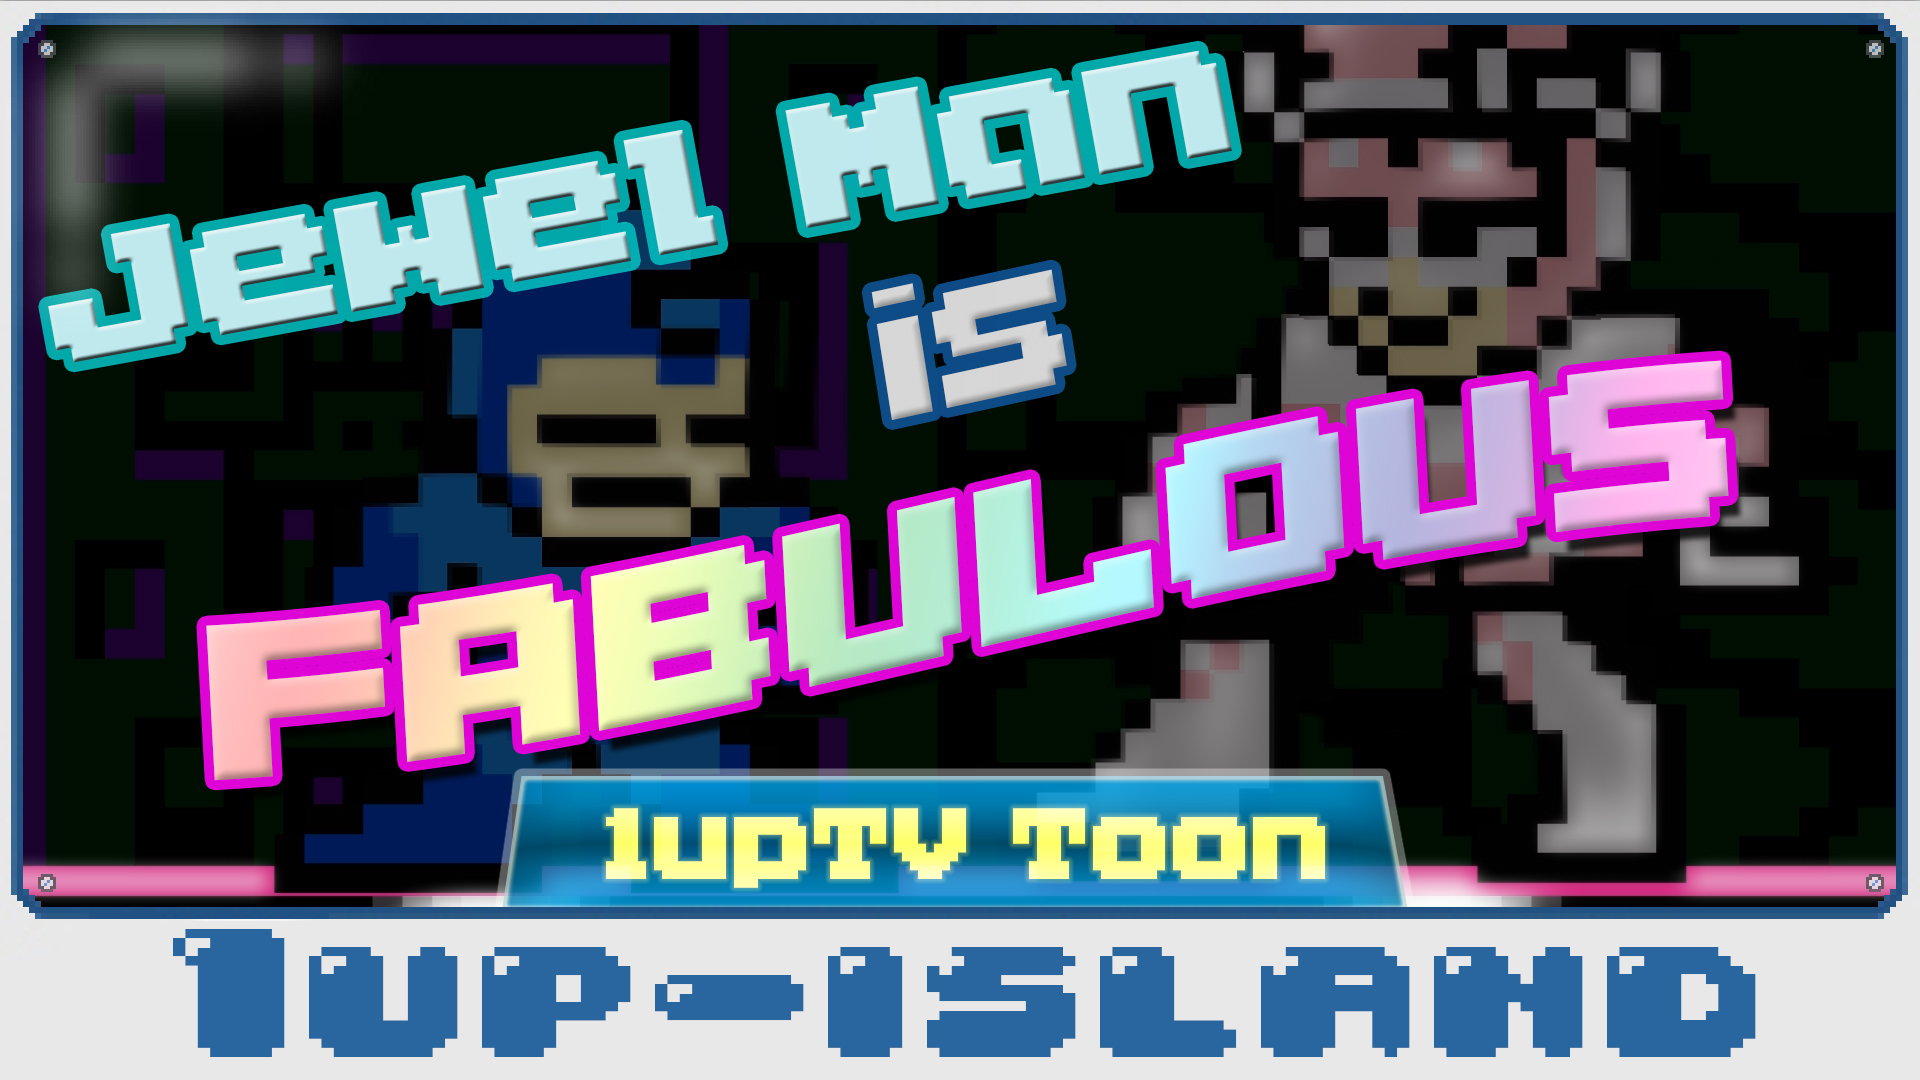 Jewel Man is Fabulous